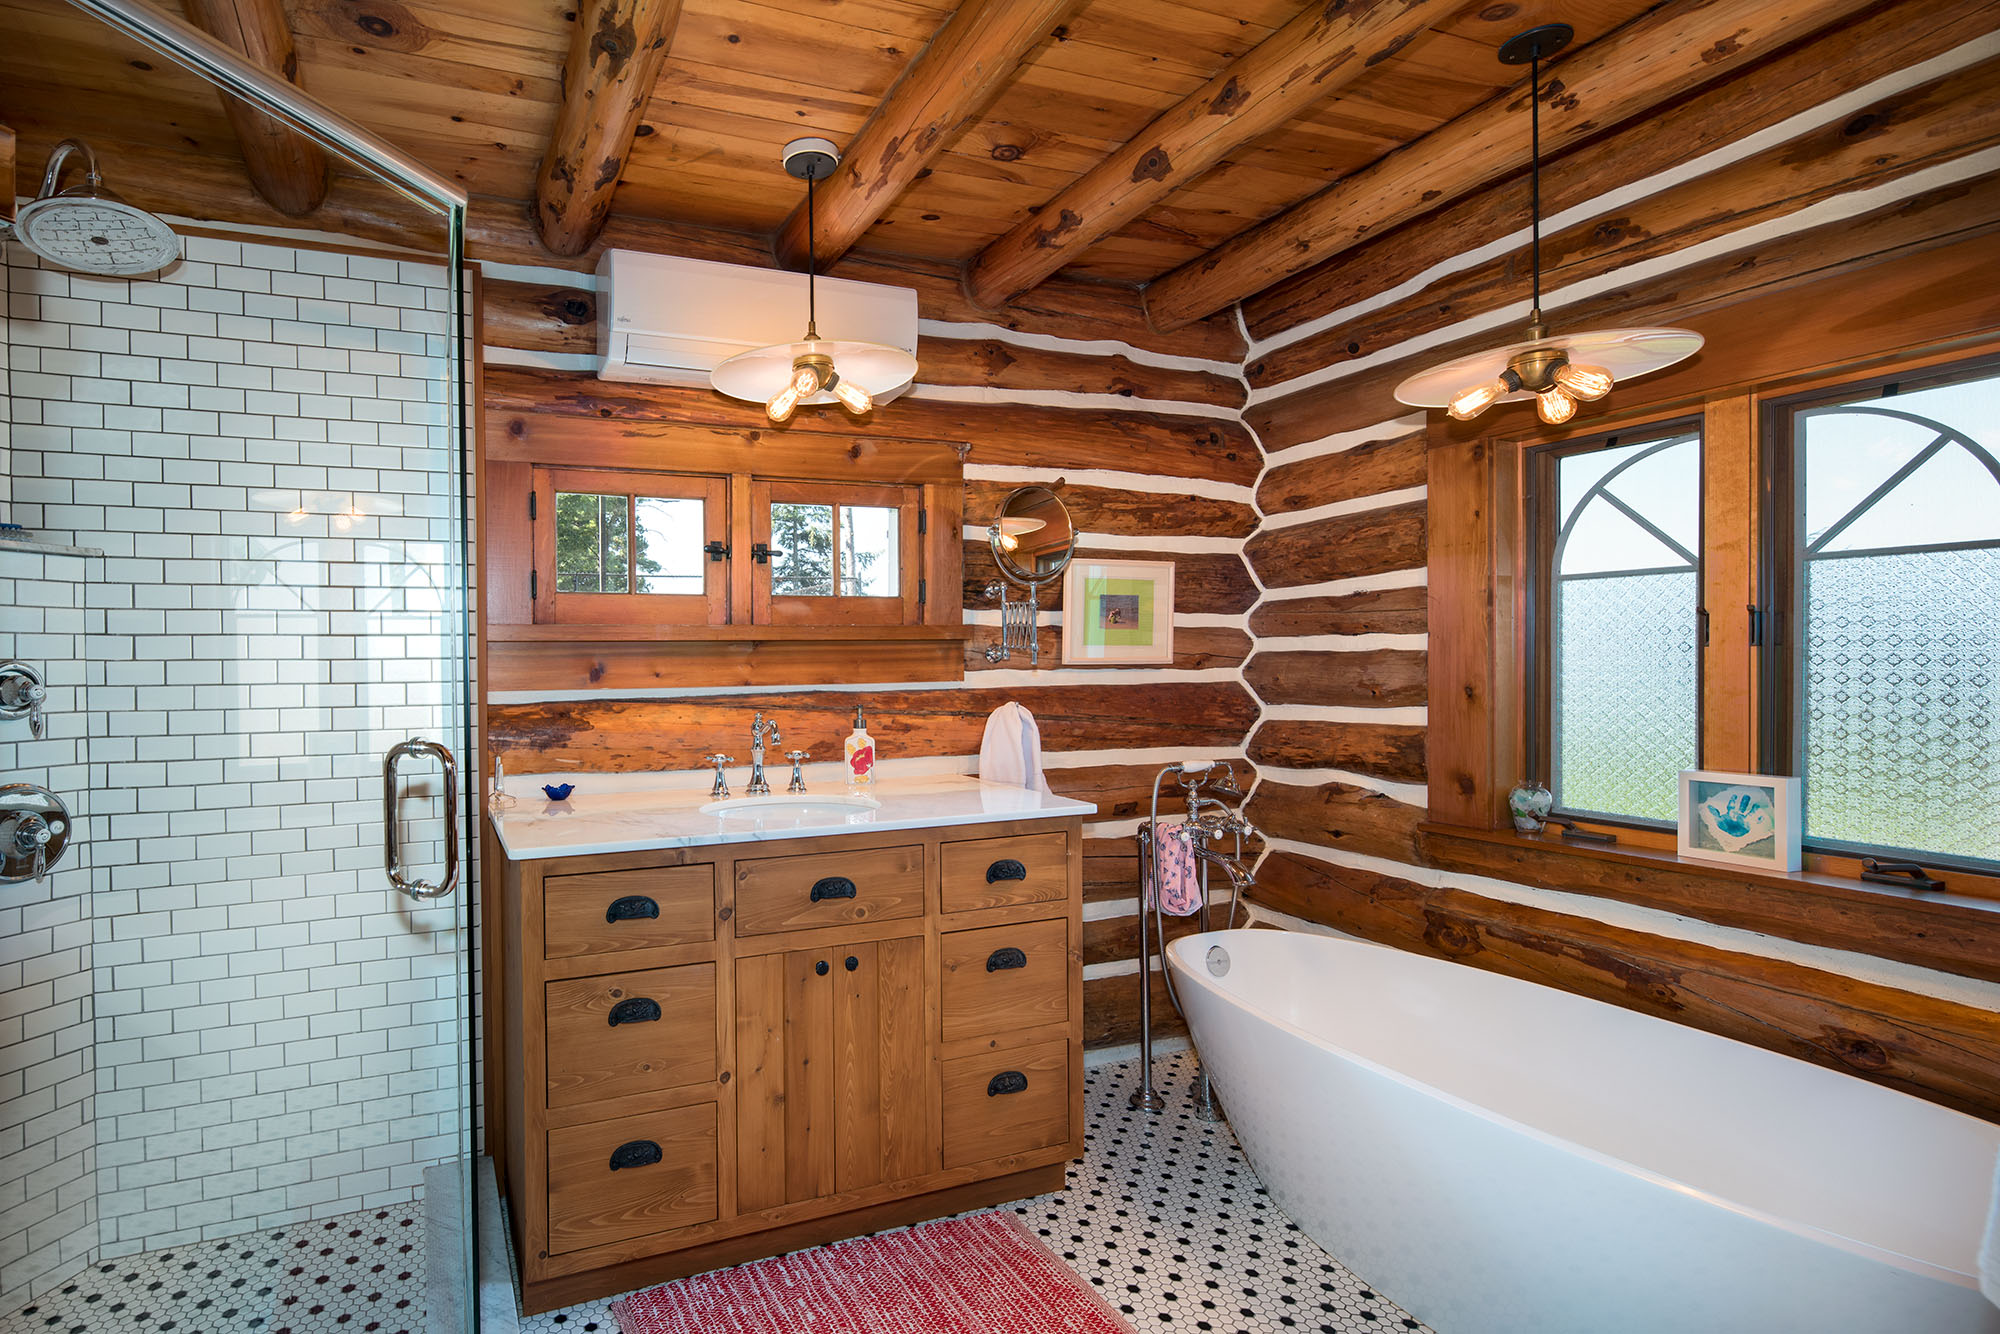 Bathroom Renovation Full Log Interior